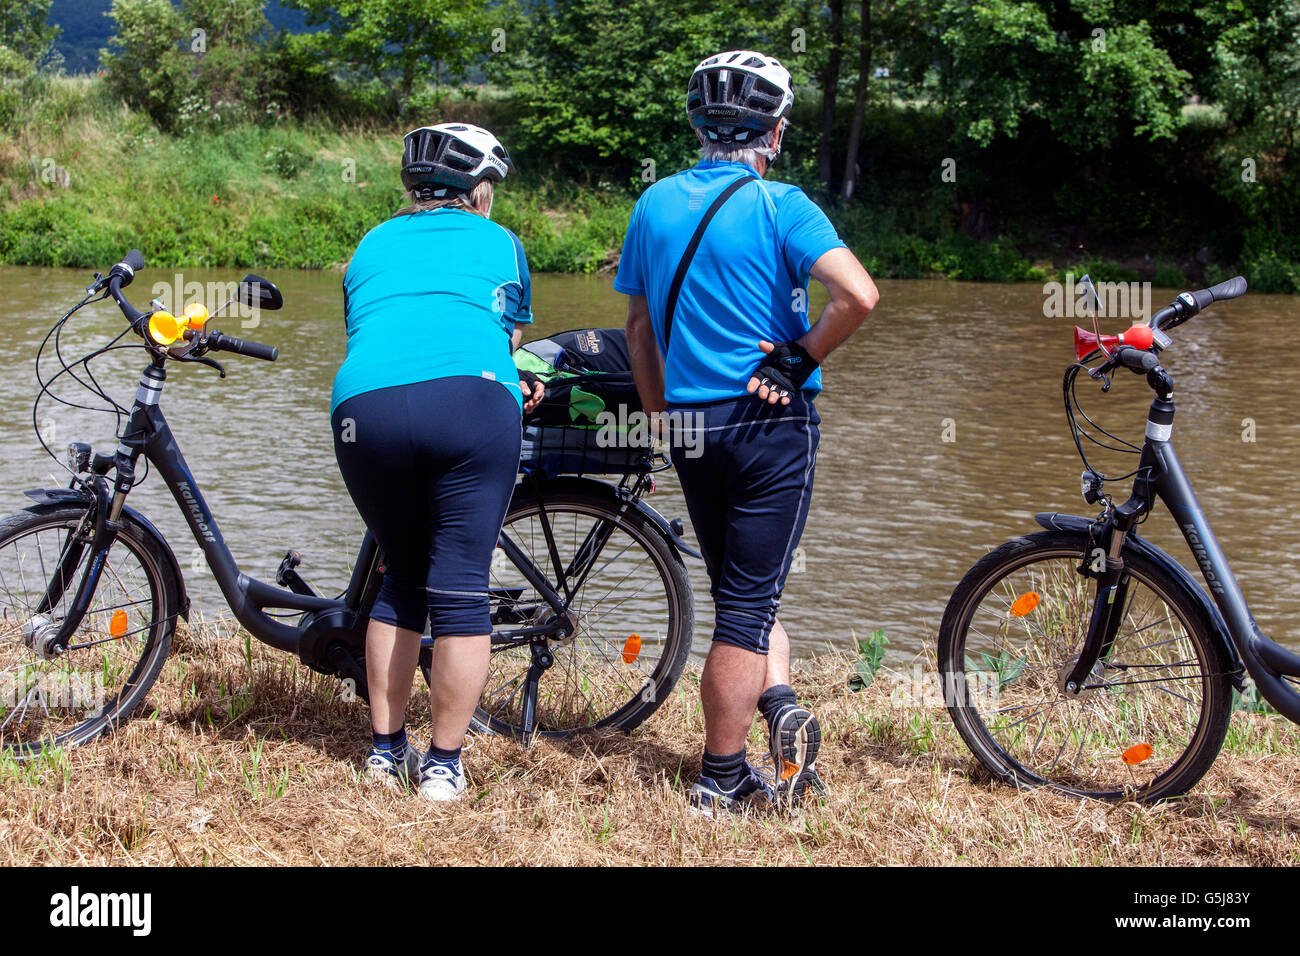 Two cyclists with their electric bikes watching river - Stock Image